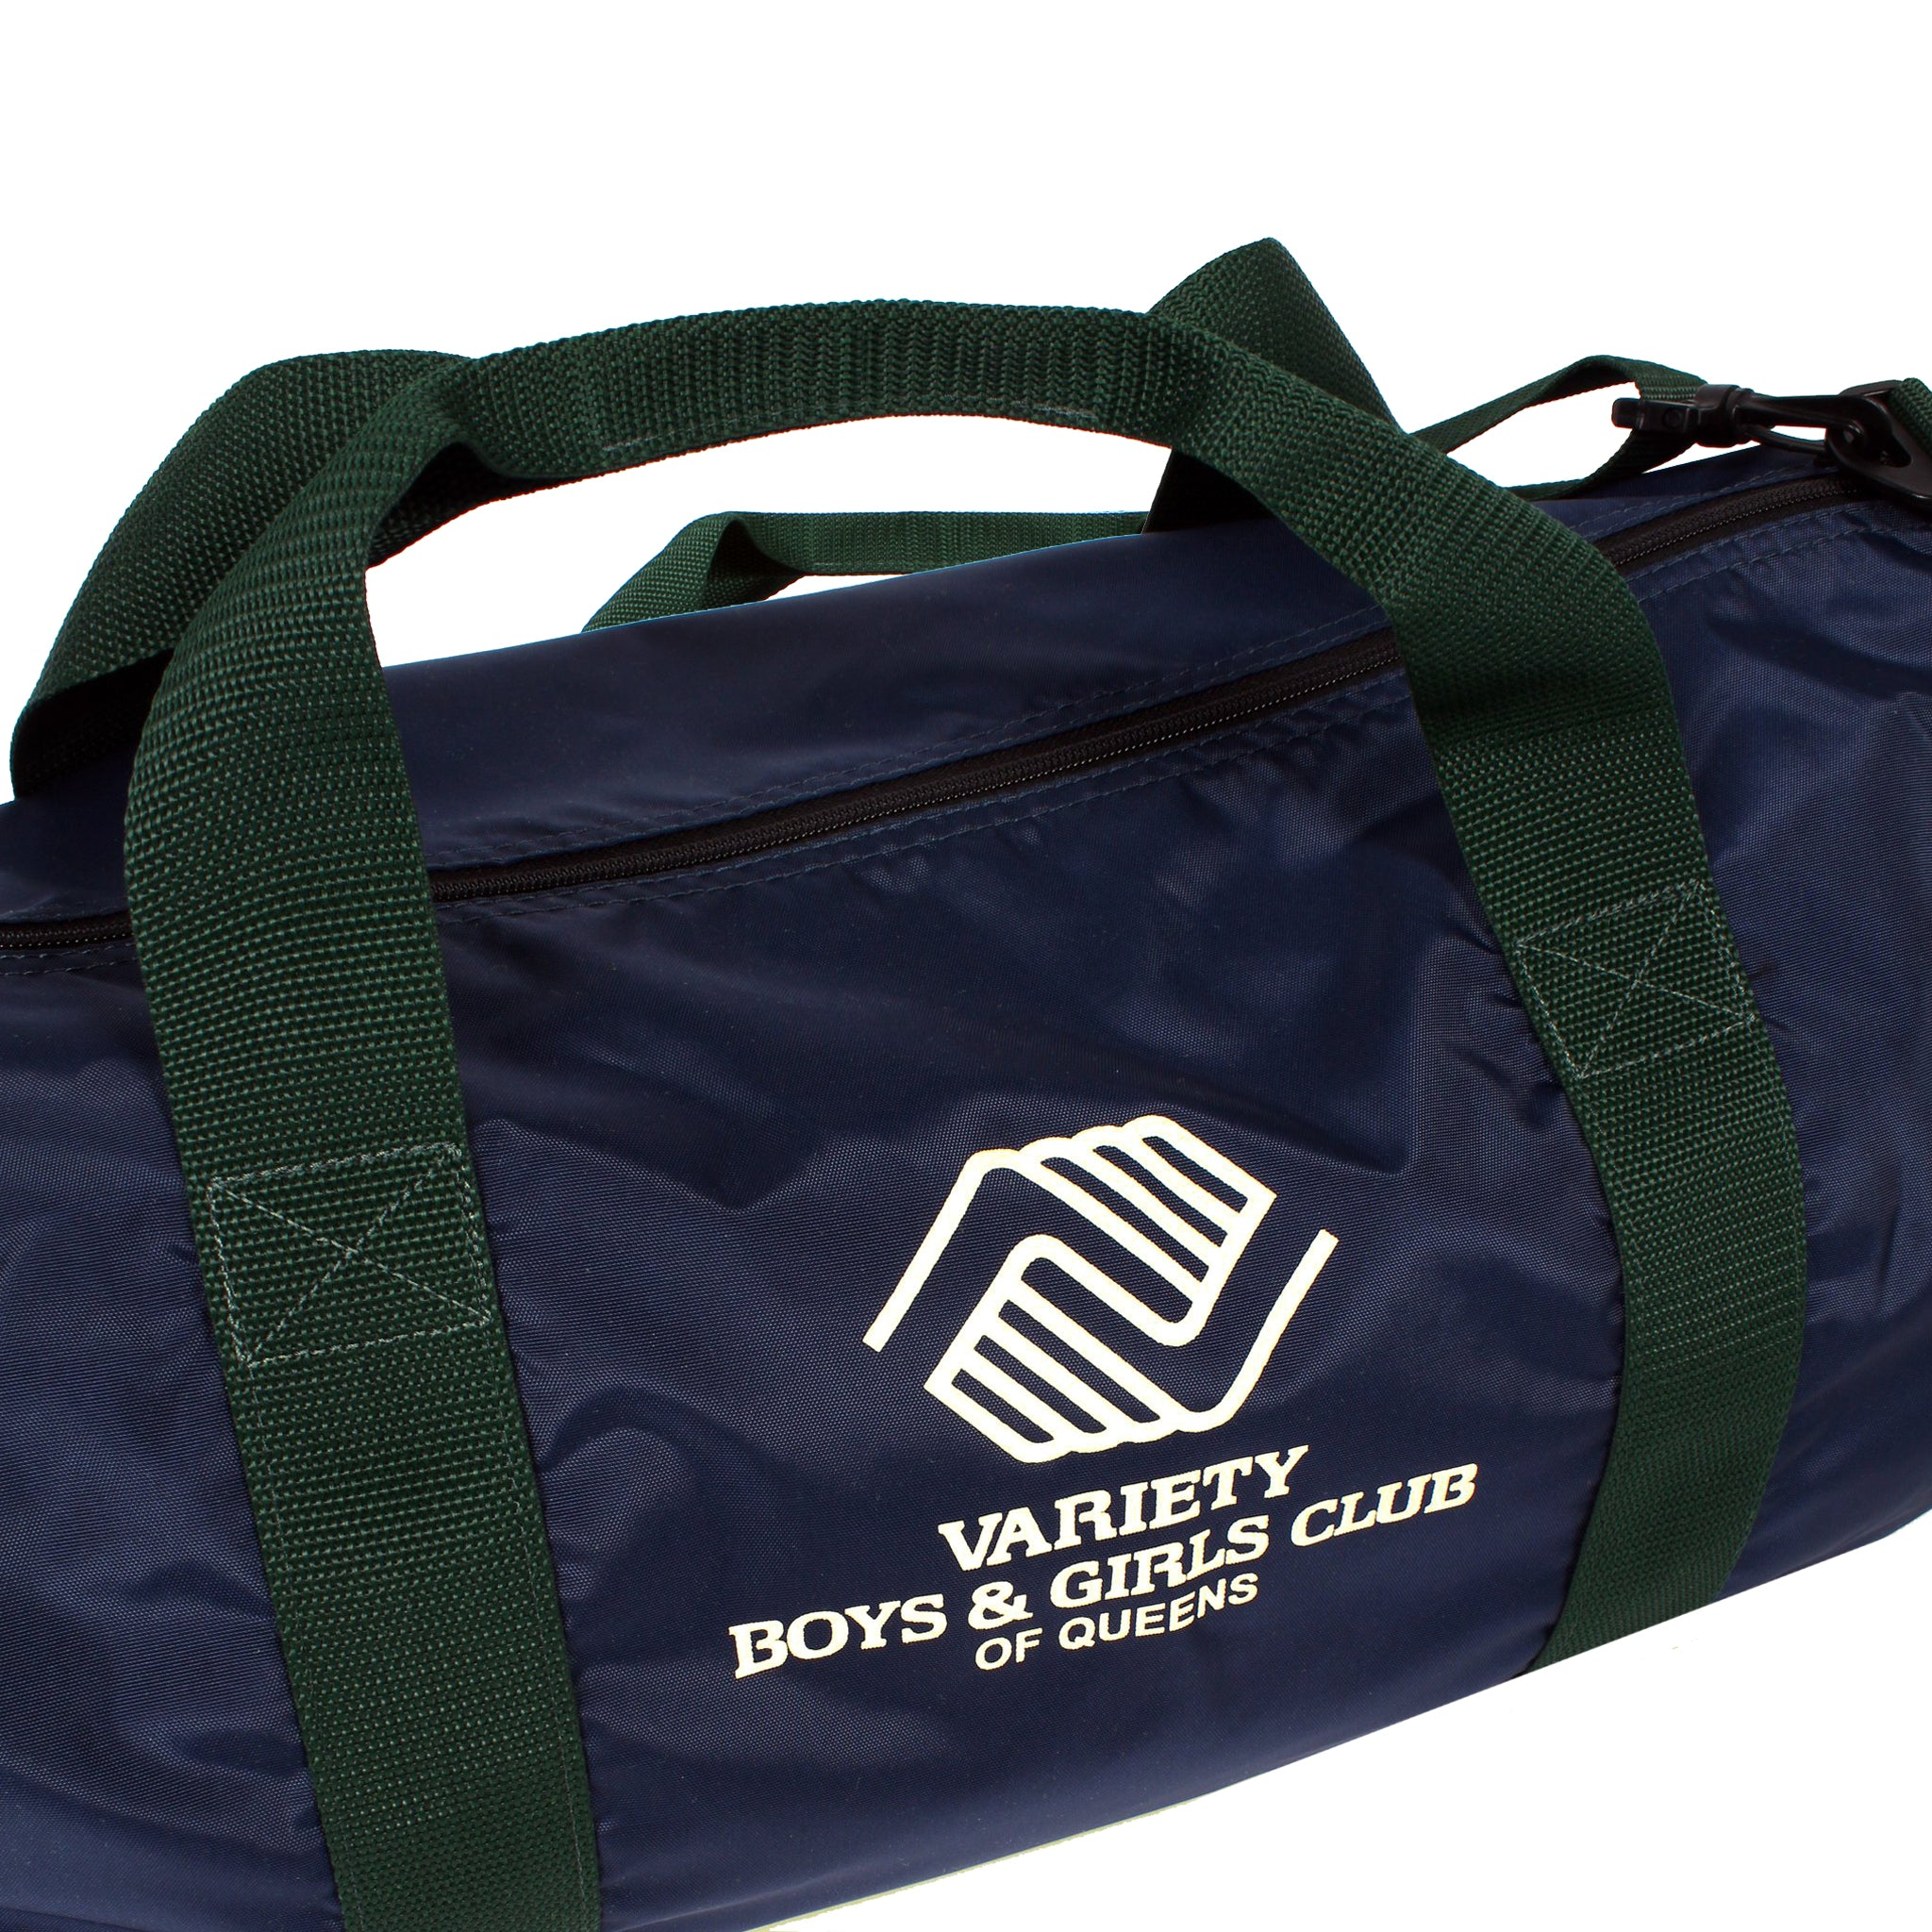 B&G Team Duffle Bag - Navy